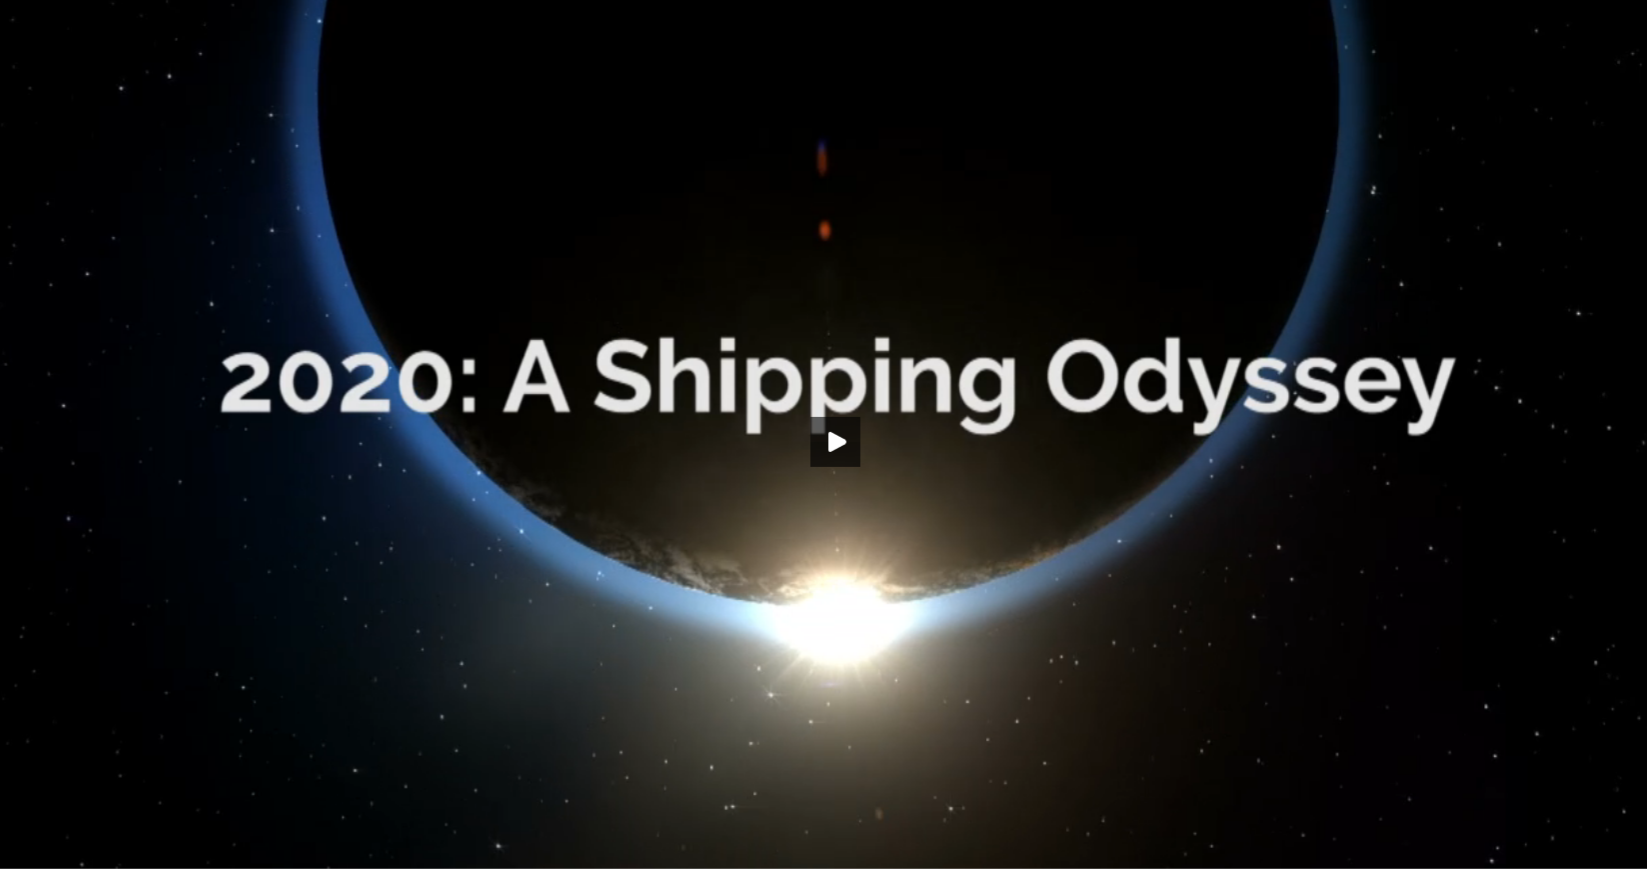 Why SHIPPINGInsight??  Answers And YOUR INVITATION To 2020:  A Shipping Odyssey